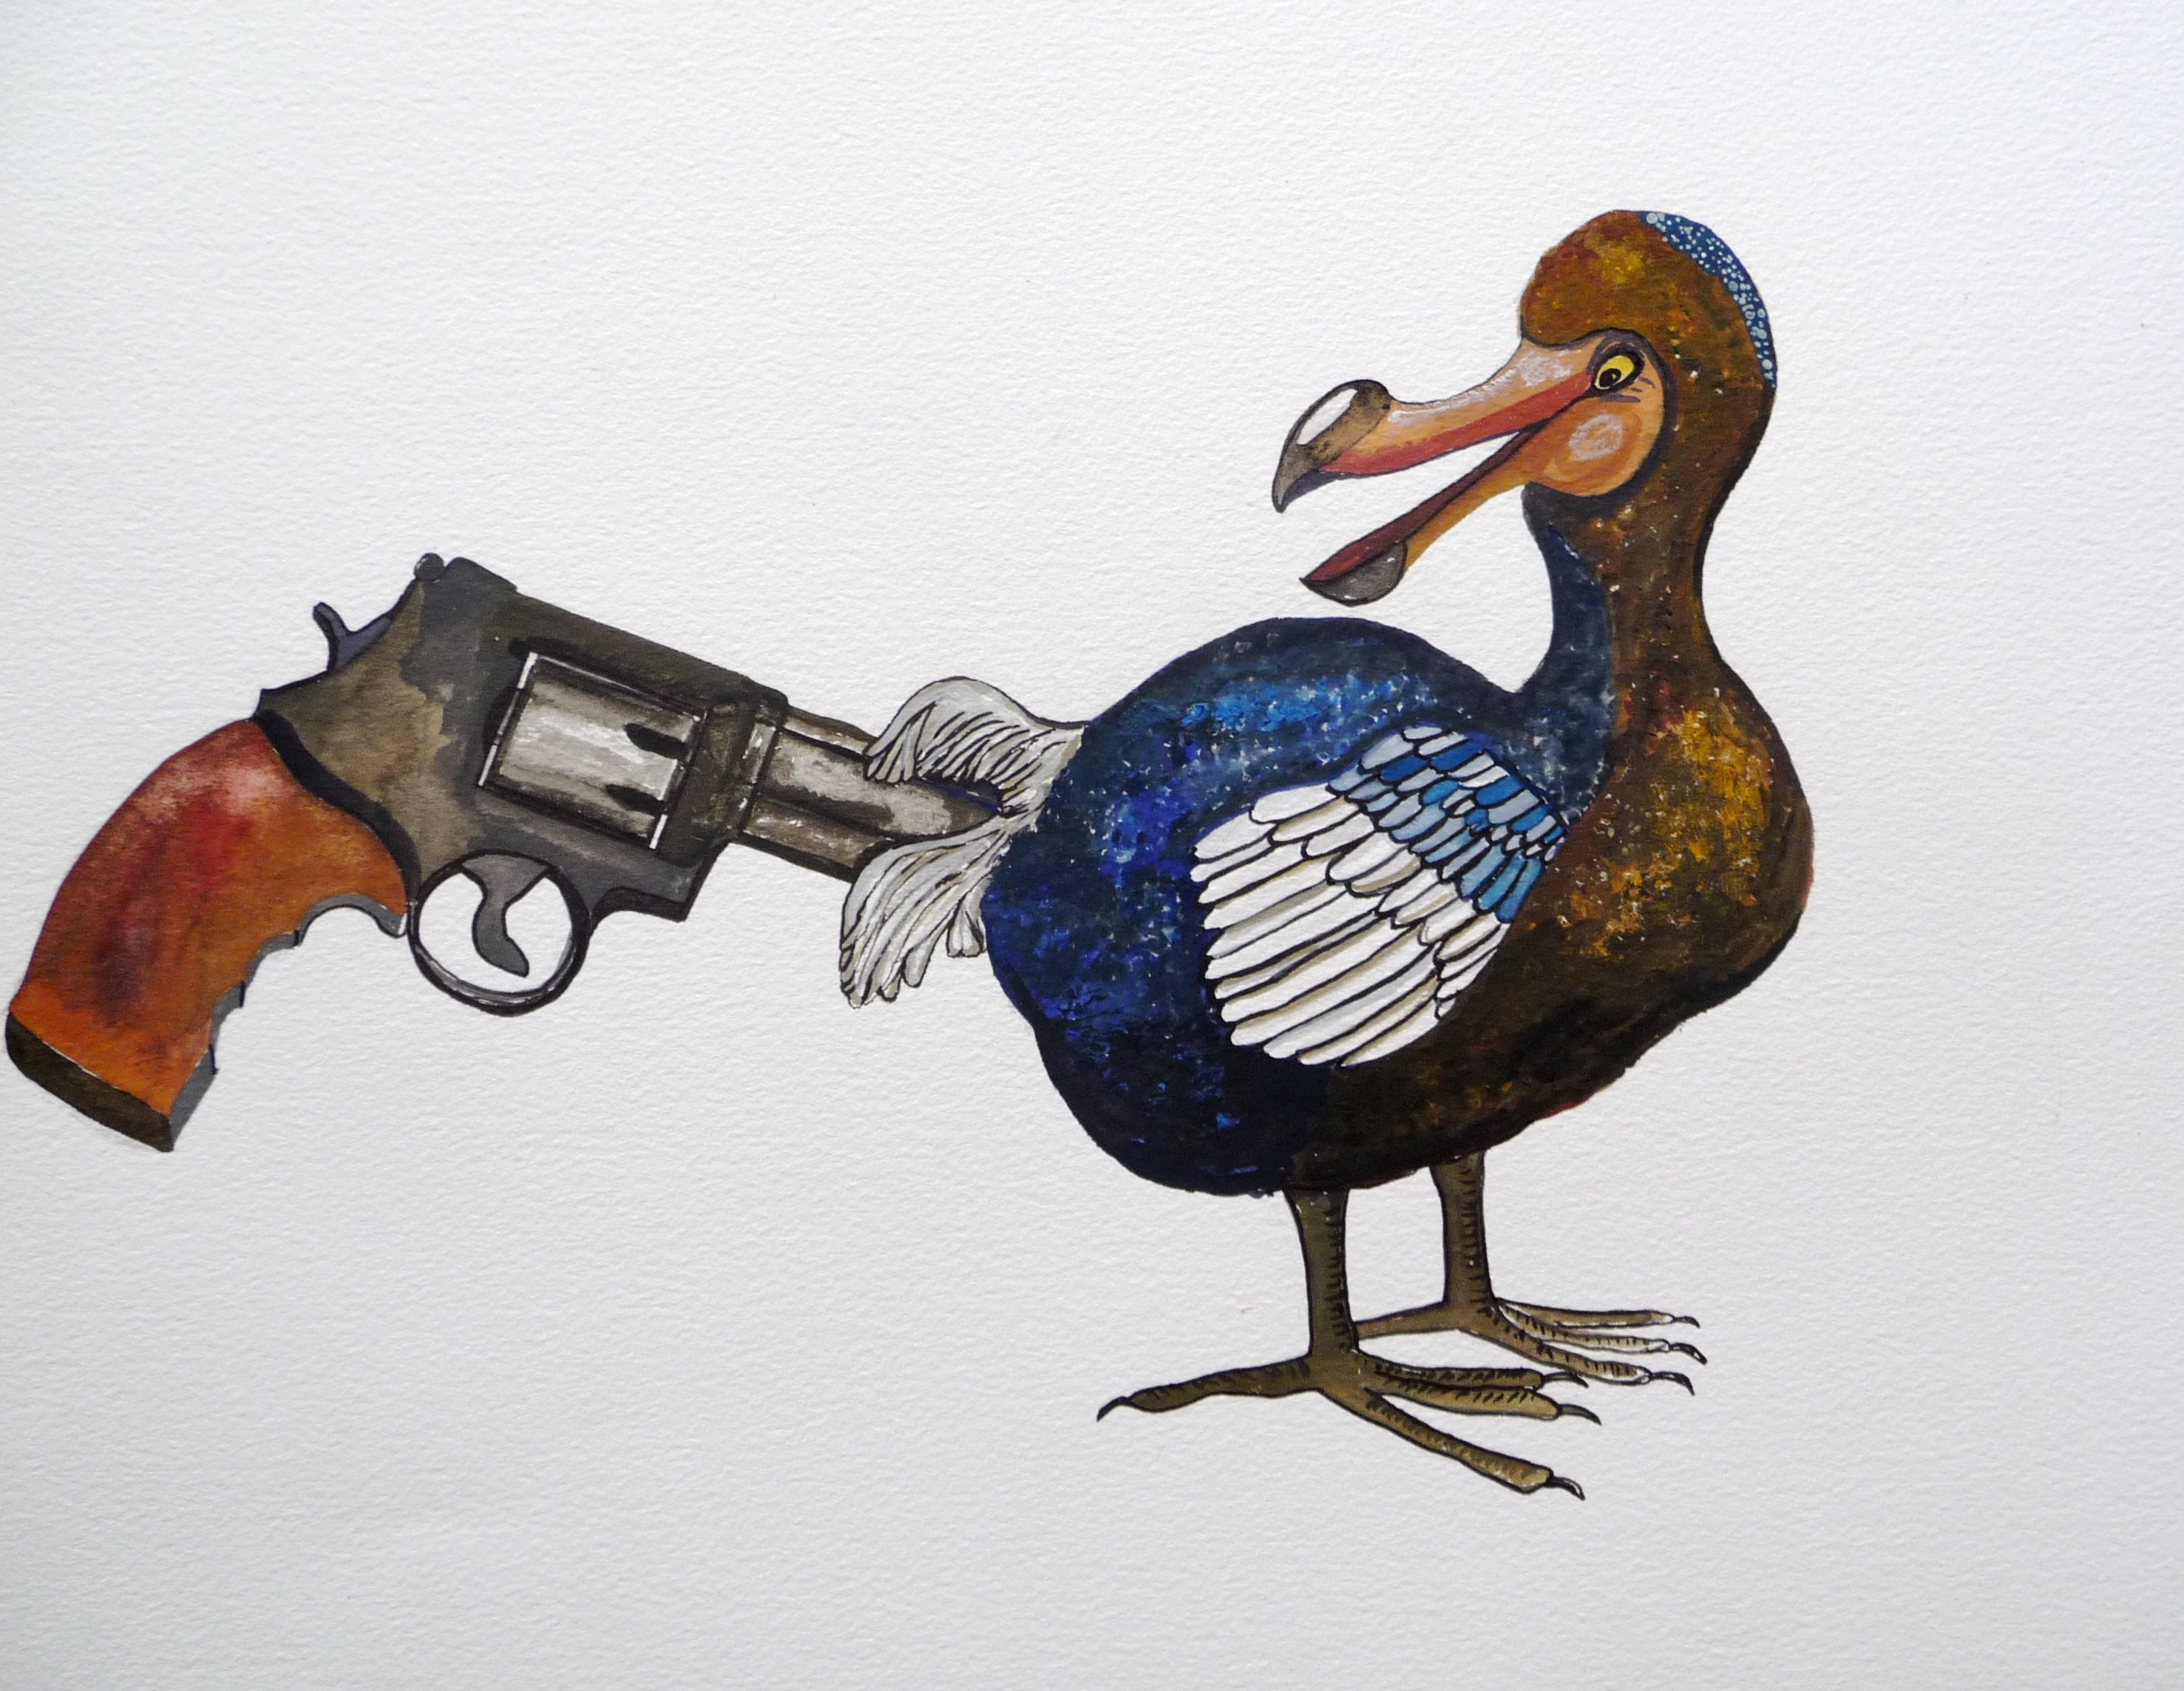 THE LAST DODO - 21CM X 14CM - GOUACHE ON PAPER - 2008